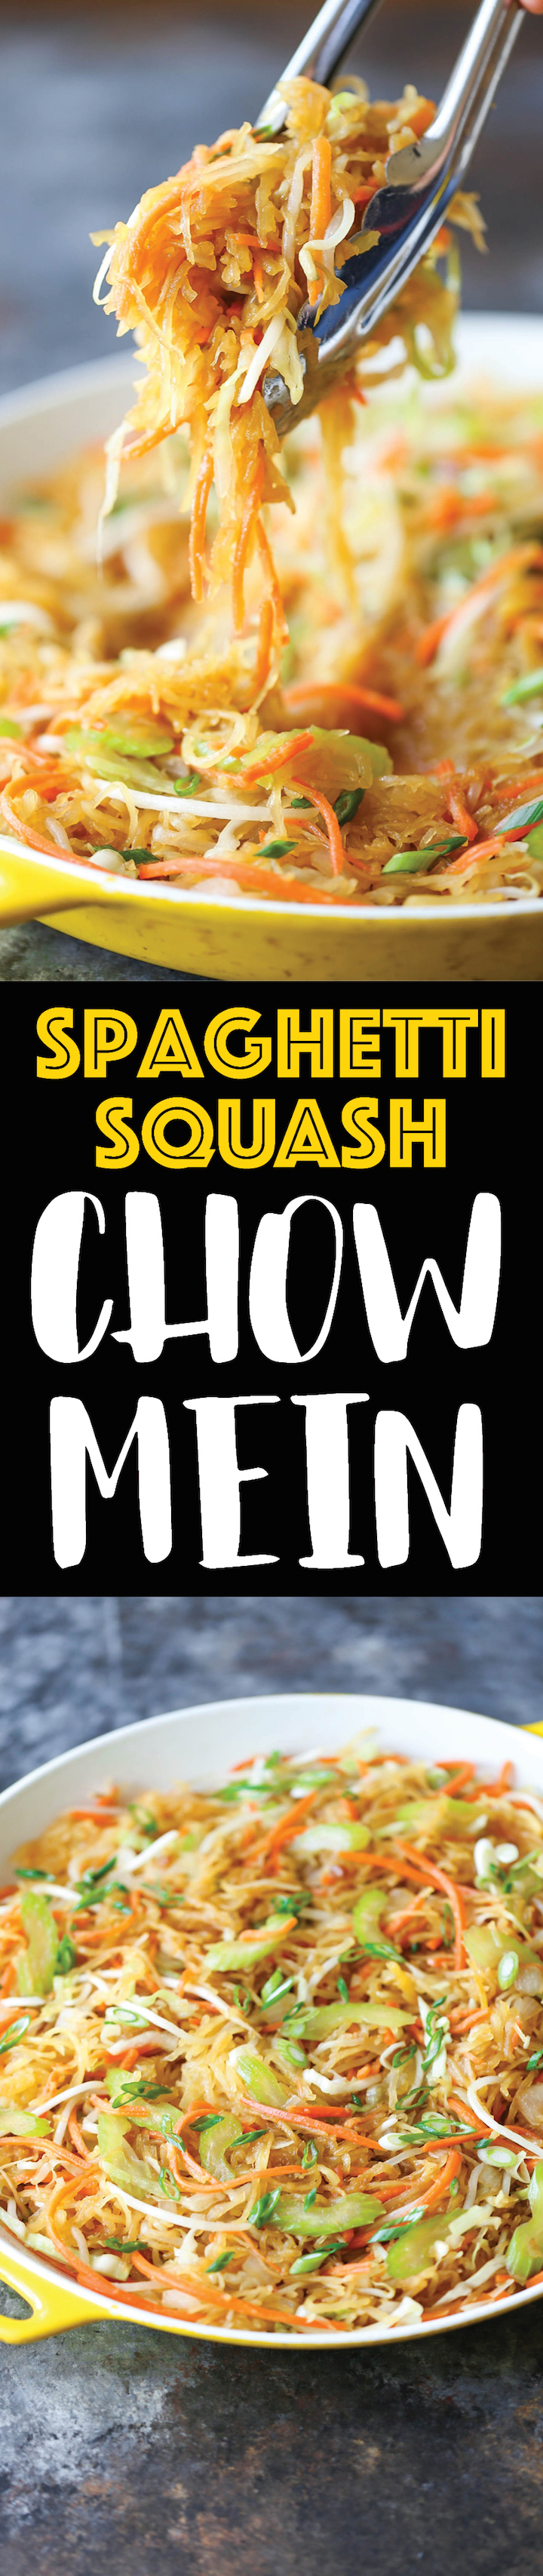 Spaghetti Squash Chow Mein - A healthier low-carb version of everyone's favorite takeout dish. Even your picky eaters will love this! Only 299 cal/serving!